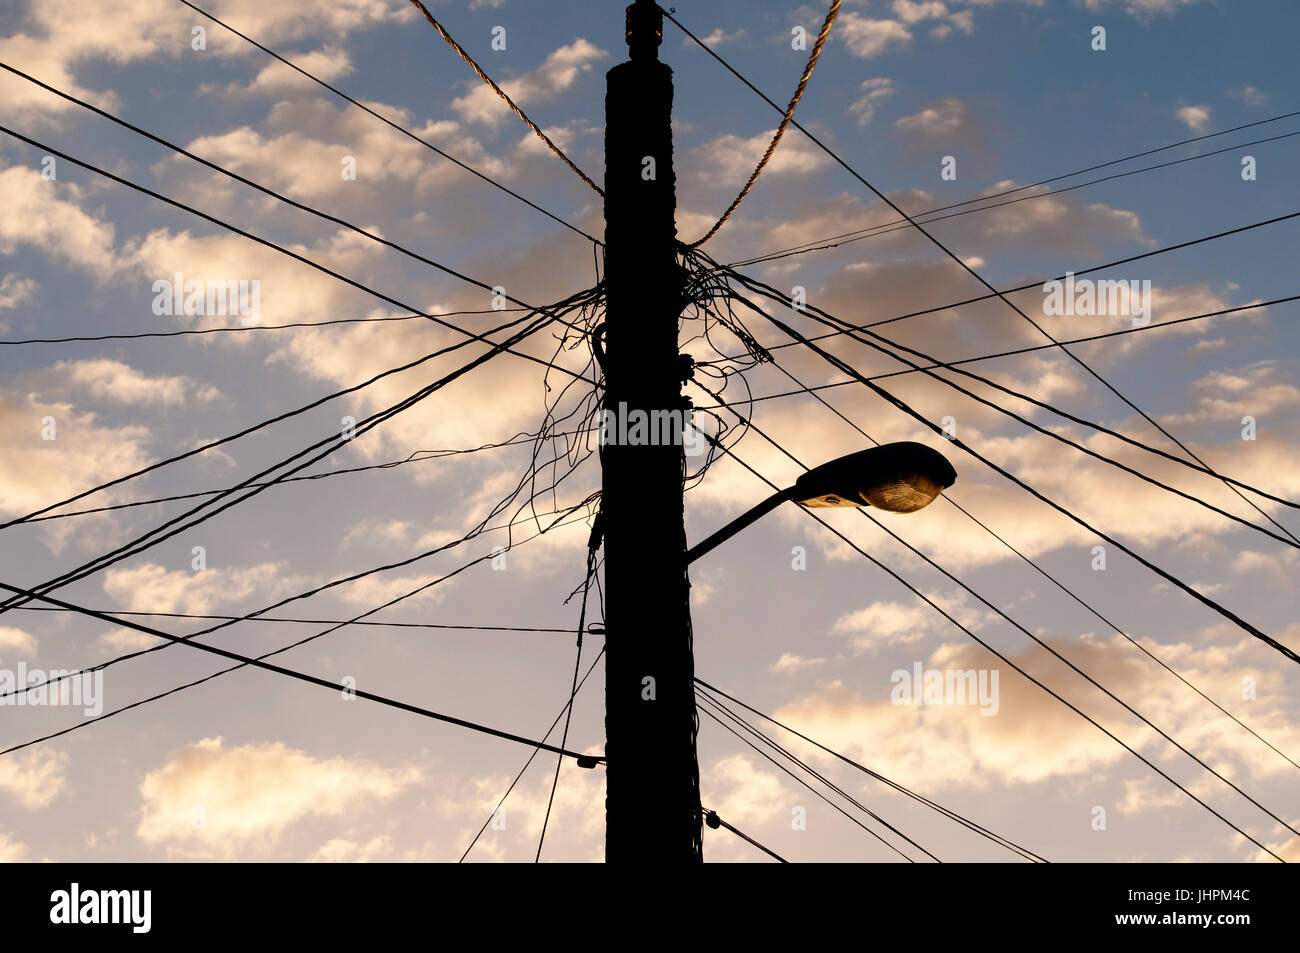 Tangled Wiring Stockfotos & Tangled Wiring Bilder - Alamy